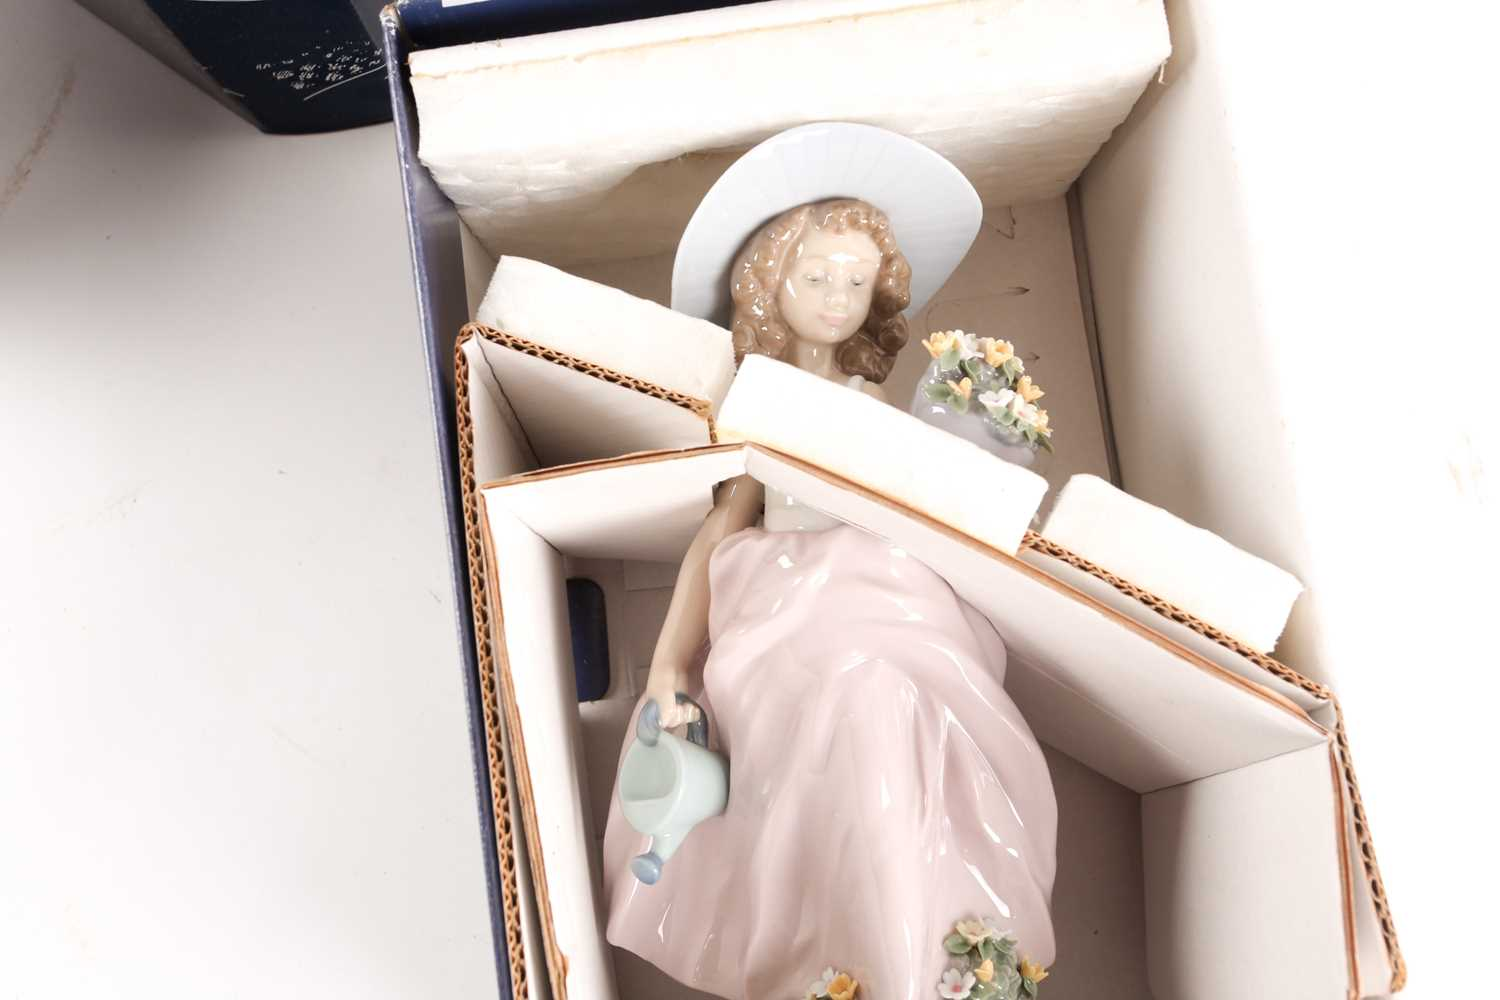 Six Lladro figures, Now & Forever (07642), A Wish Come True, (07676), Pals Forever, (07686), - Image 4 of 6